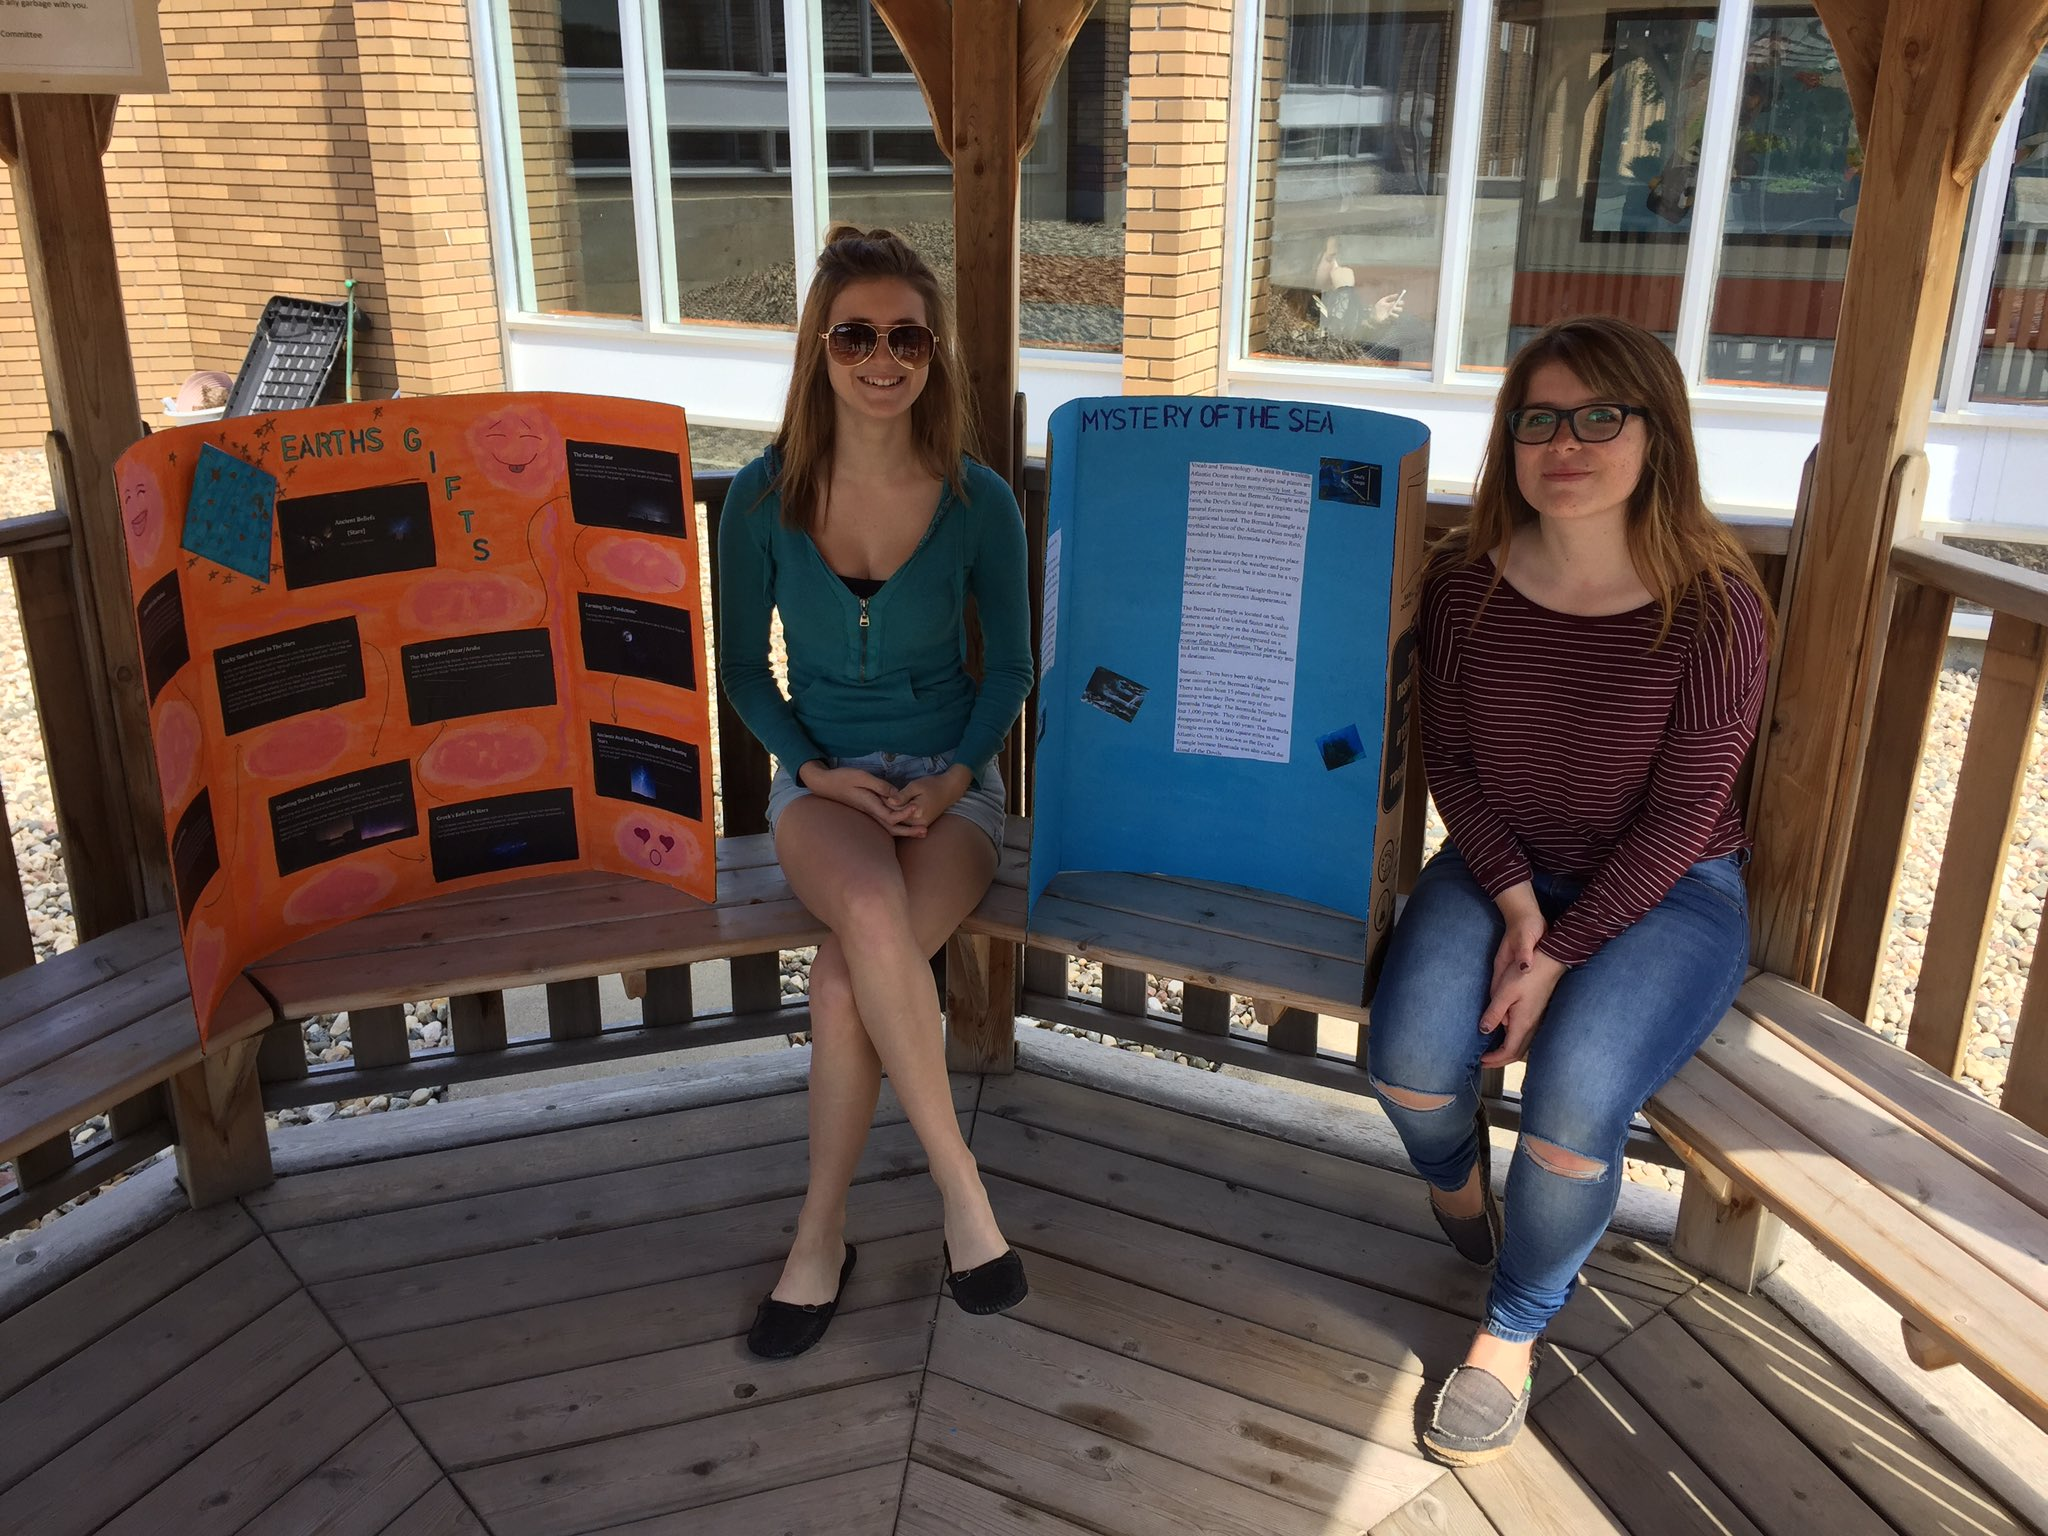 Practicing for presentations and enjoying the nice weather!  #lovesummer #yrhs https://t.co/nrrQpsKGkS